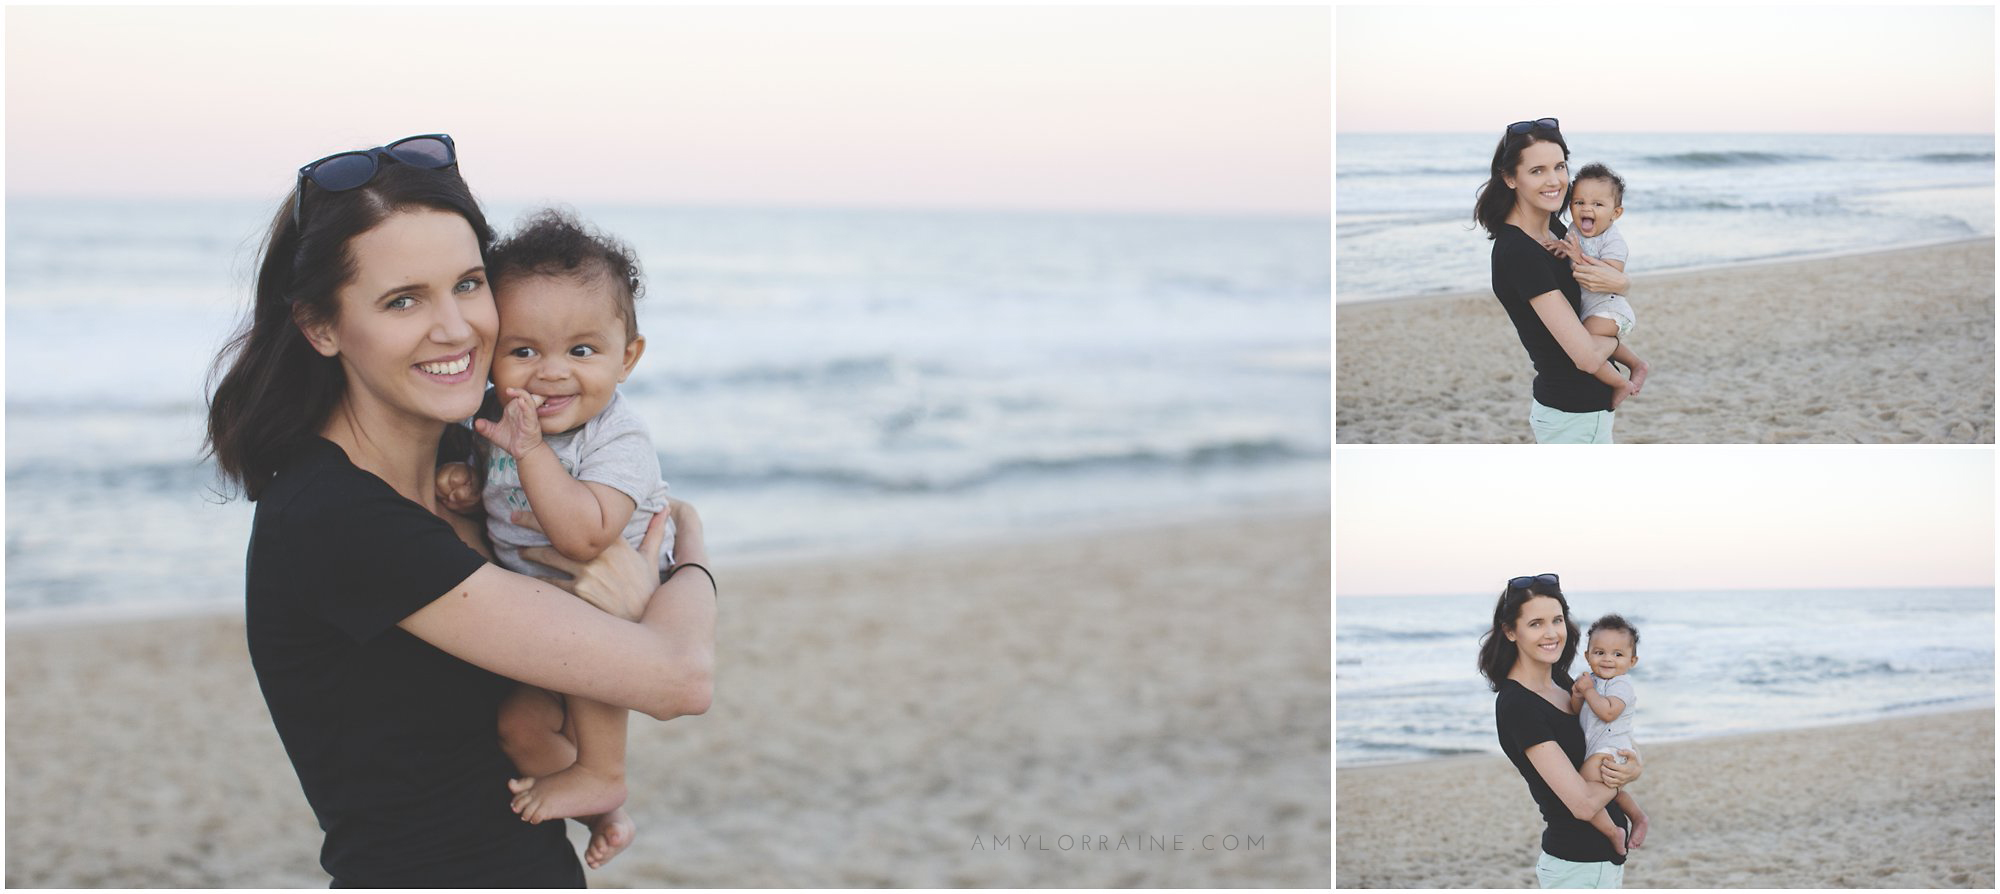 Quentin Meets The Ocean | Beach Photos + Vlog | www.amylorraine.com